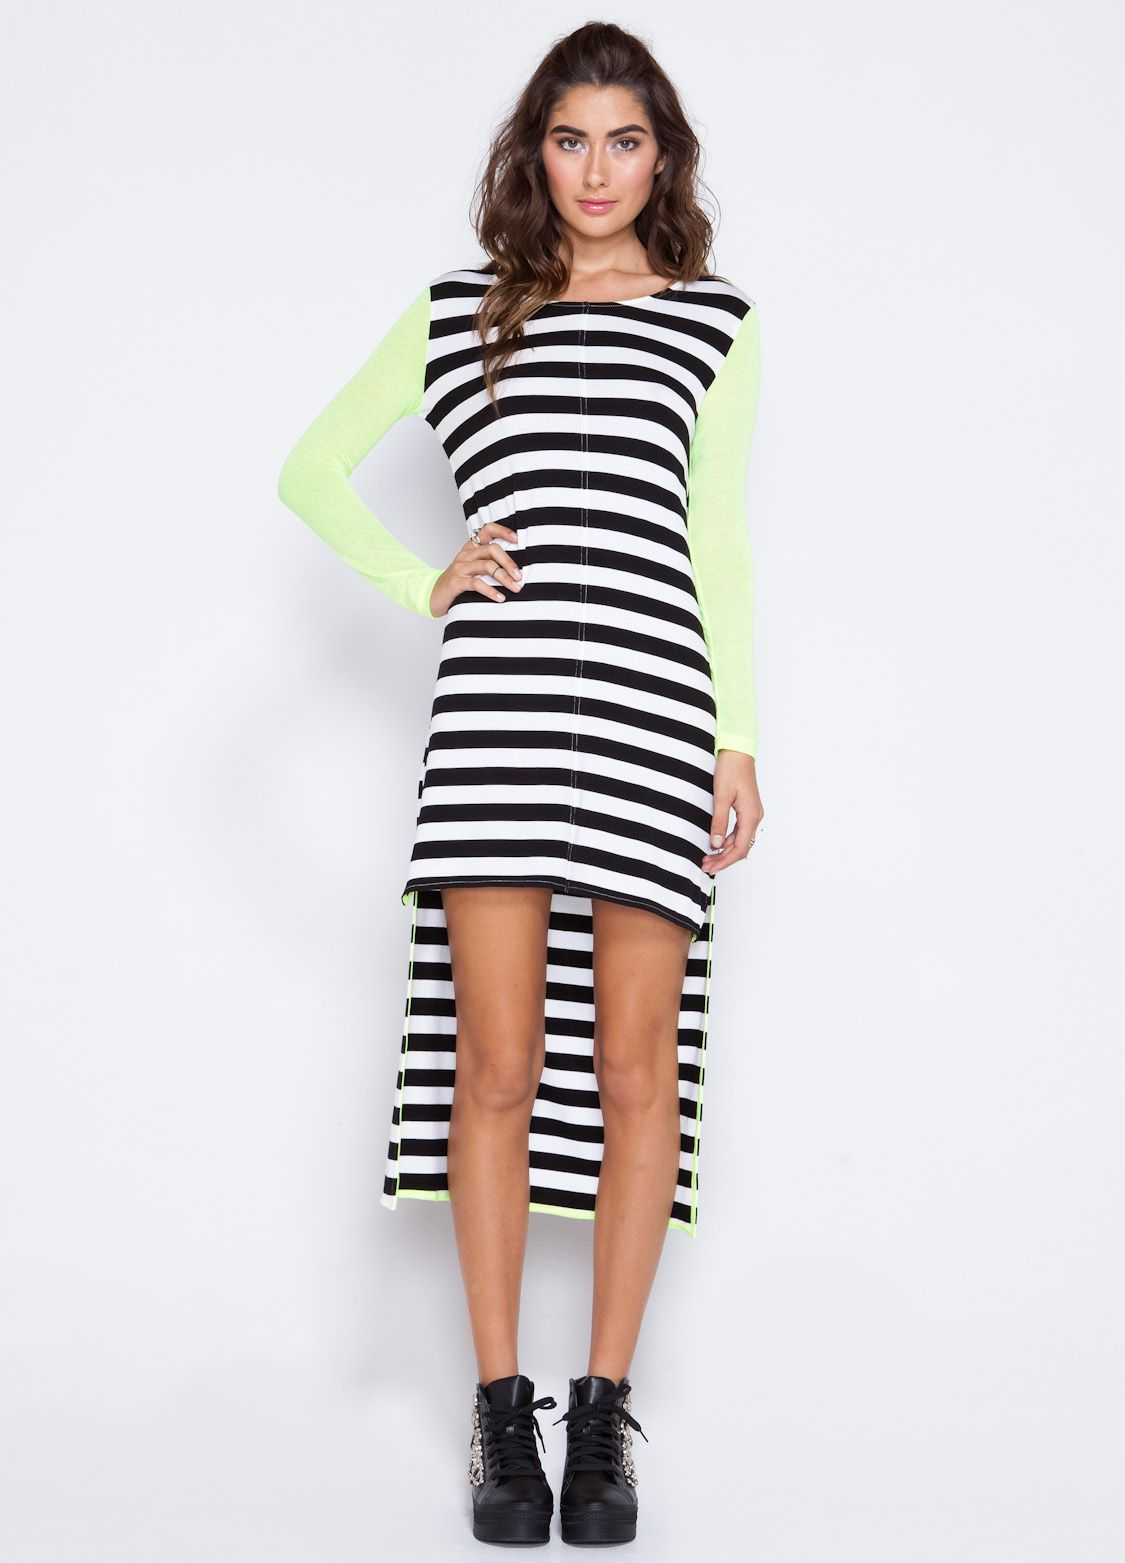 Jail chic this hilow black and white striped dress features neon